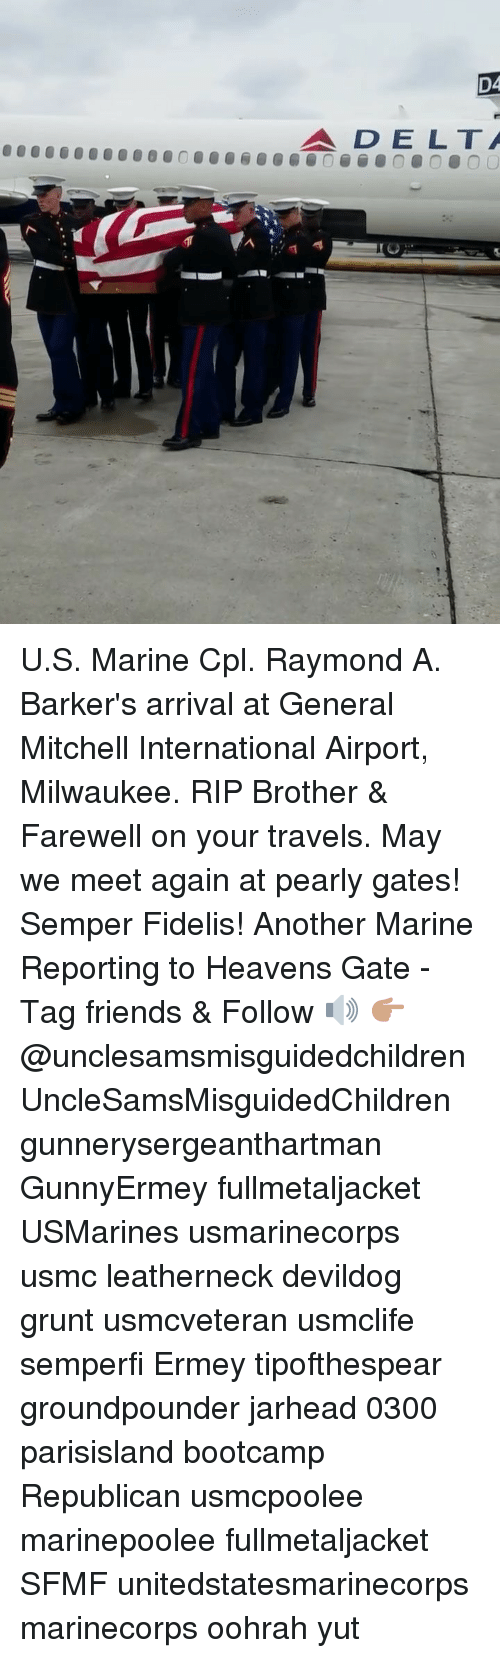 Friends, Memes, and Delta: D4  DELTA U.S. Marine Cpl. Raymond A. Barker's arrival at General Mitchell International Airport, Milwaukee. RIP Brother & Farewell on your travels. May we meet again at pearly gates! Semper Fidelis! Another Marine Reporting to Heavens Gate - Tag friends & Follow 🔊 👉🏽 @unclesamsmisguidedchildren UncleSamsMisguidedChildren gunnerysergeanthartman GunnyErmey fullmetaljacket USMarines usmarinecorps usmc leatherneck devildog grunt usmcveteran usmclife semperfi Ermey tipofthespear groundpounder jarhead 0300 parisisland bootcamp Republican usmcpoolee marinepoolee fullmetaljacket SFMF unitedstatesmarinecorps marinecorps oohrah yut